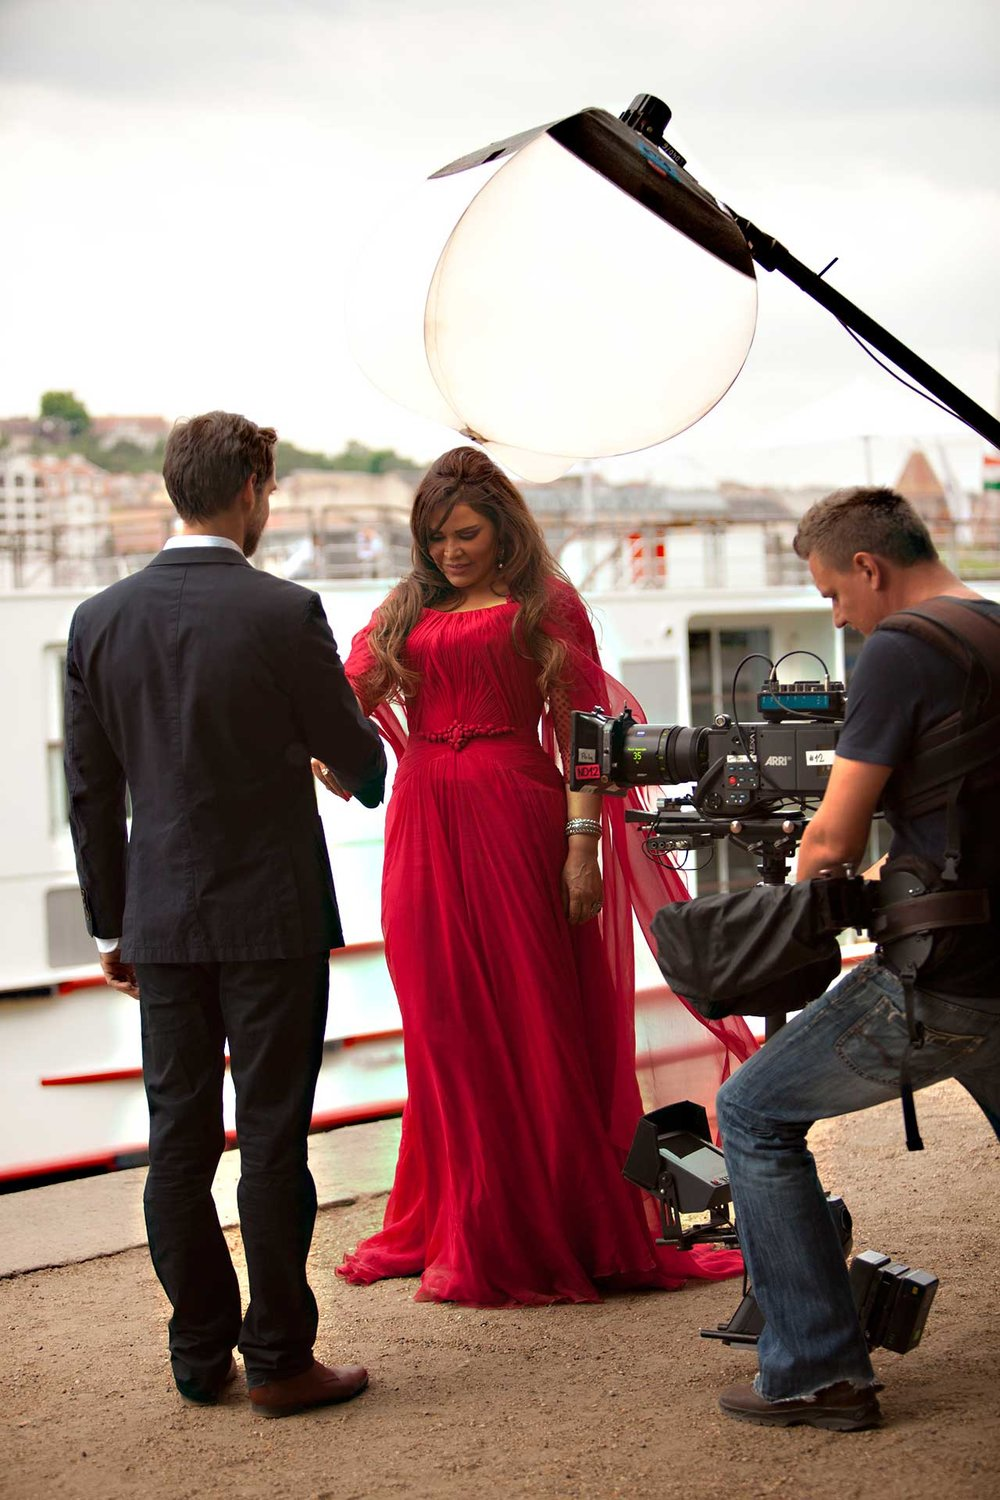 Ahlam_behind_the_scenes028.JPG